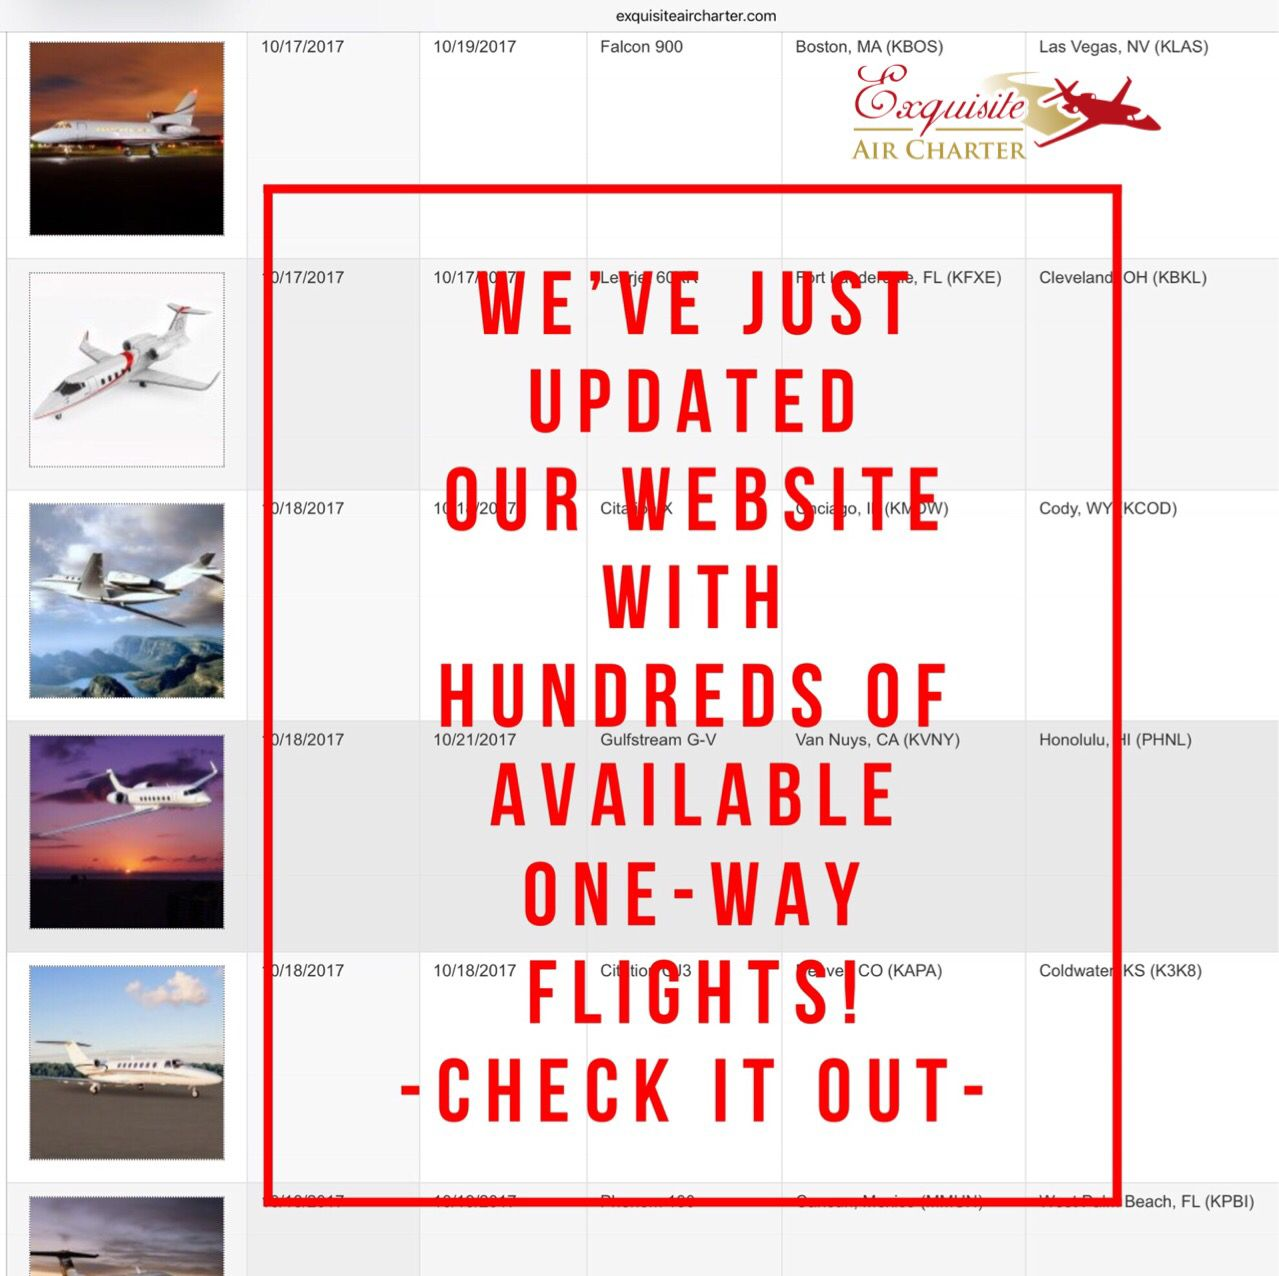 Discounted One Way Flights Exquiste Air Charter Air Charter Private Jet Flights Flight Discounts